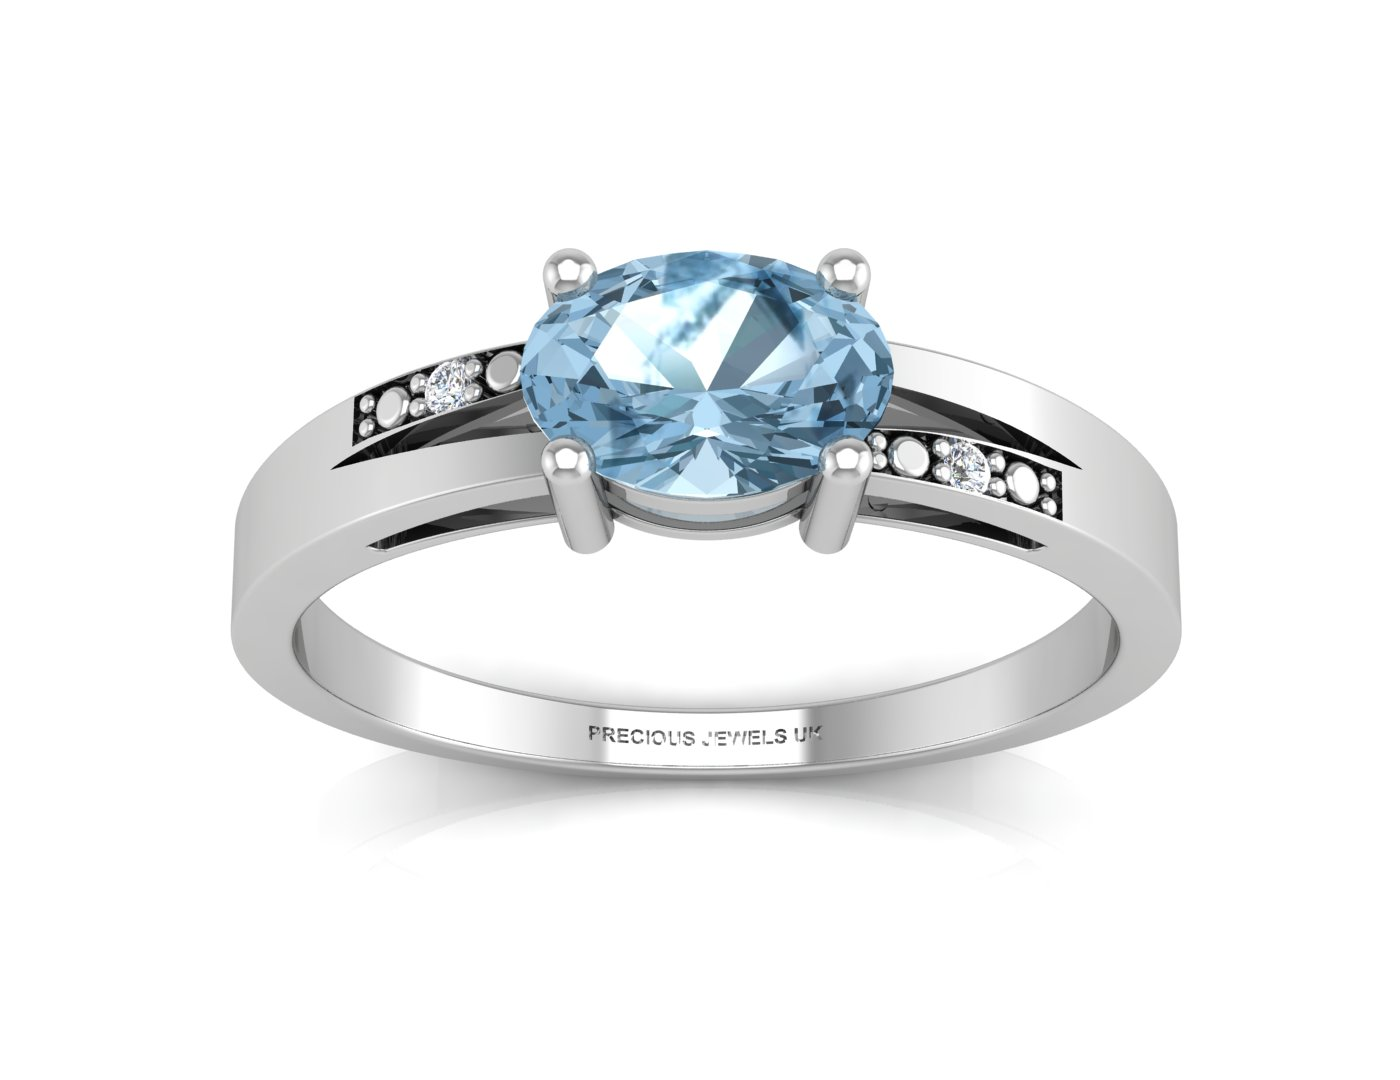 Lot 41 - 9ct White Gold Diamond And Blue Topaz Ring 0.01